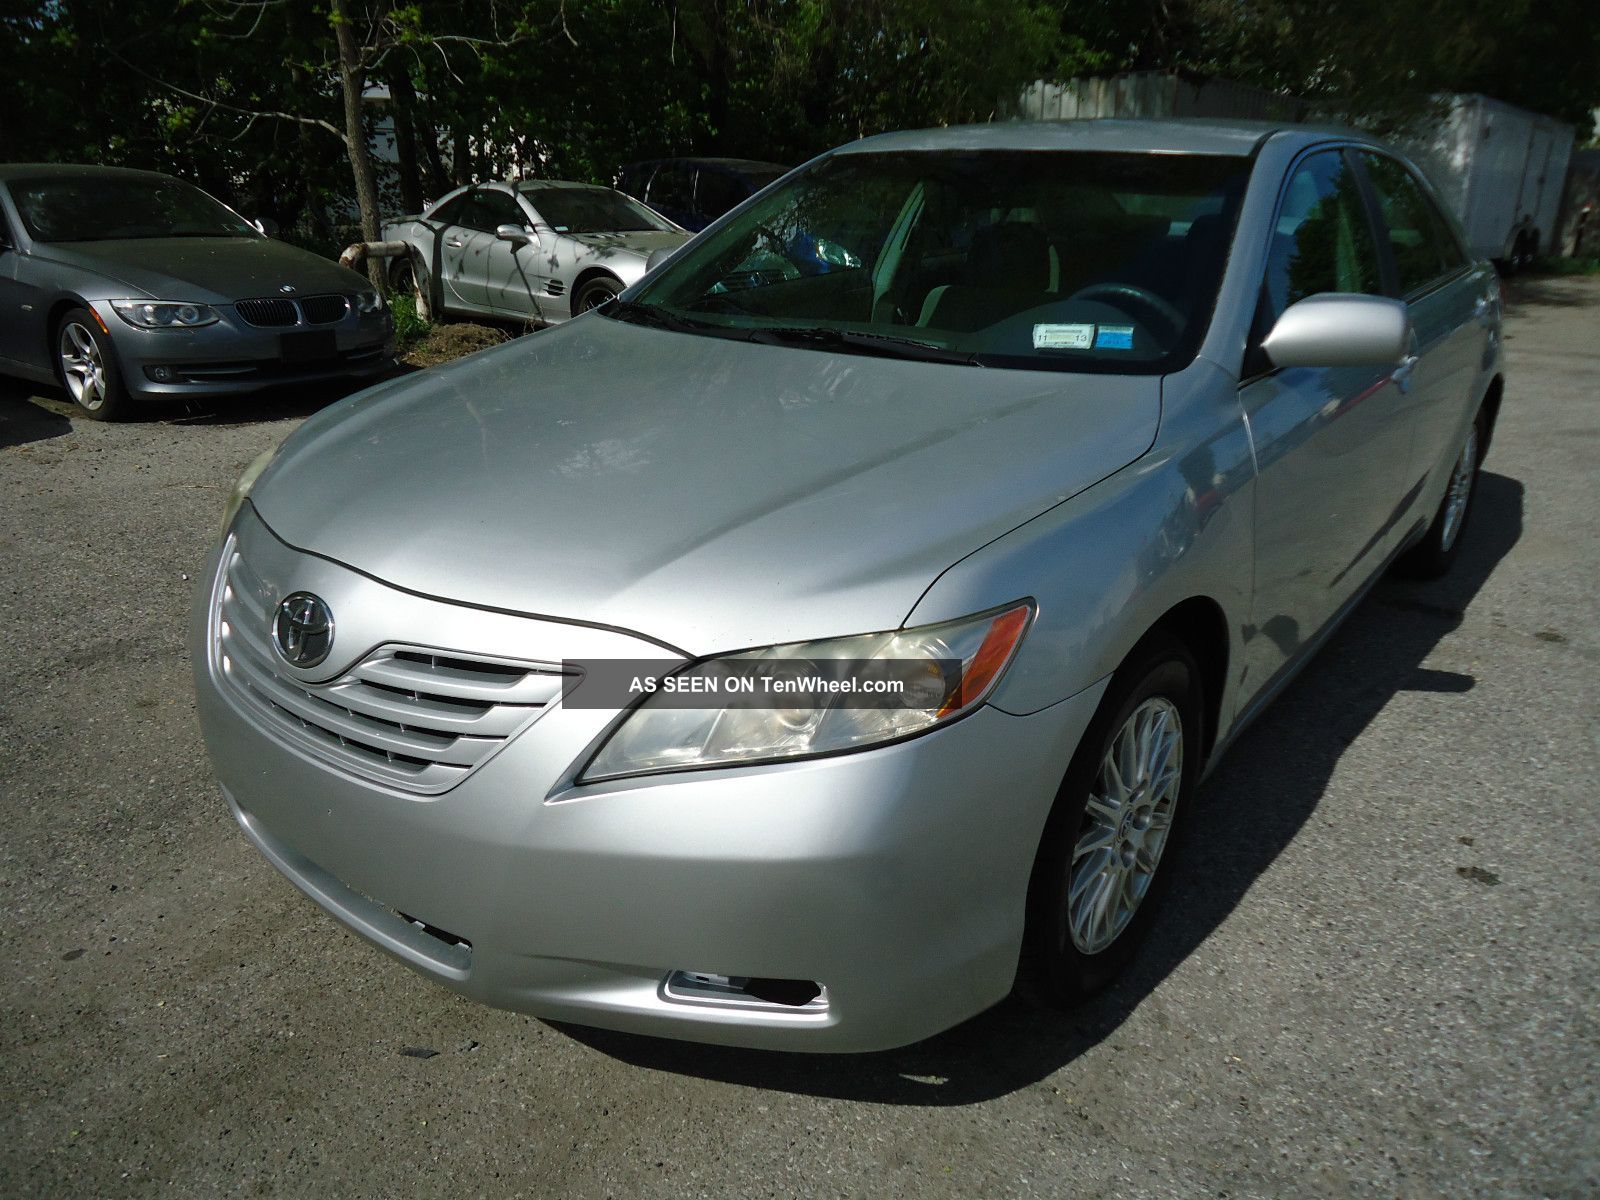 2007 Toyota Camry Le Sedan 2. 4l 4cyl. Drives Great